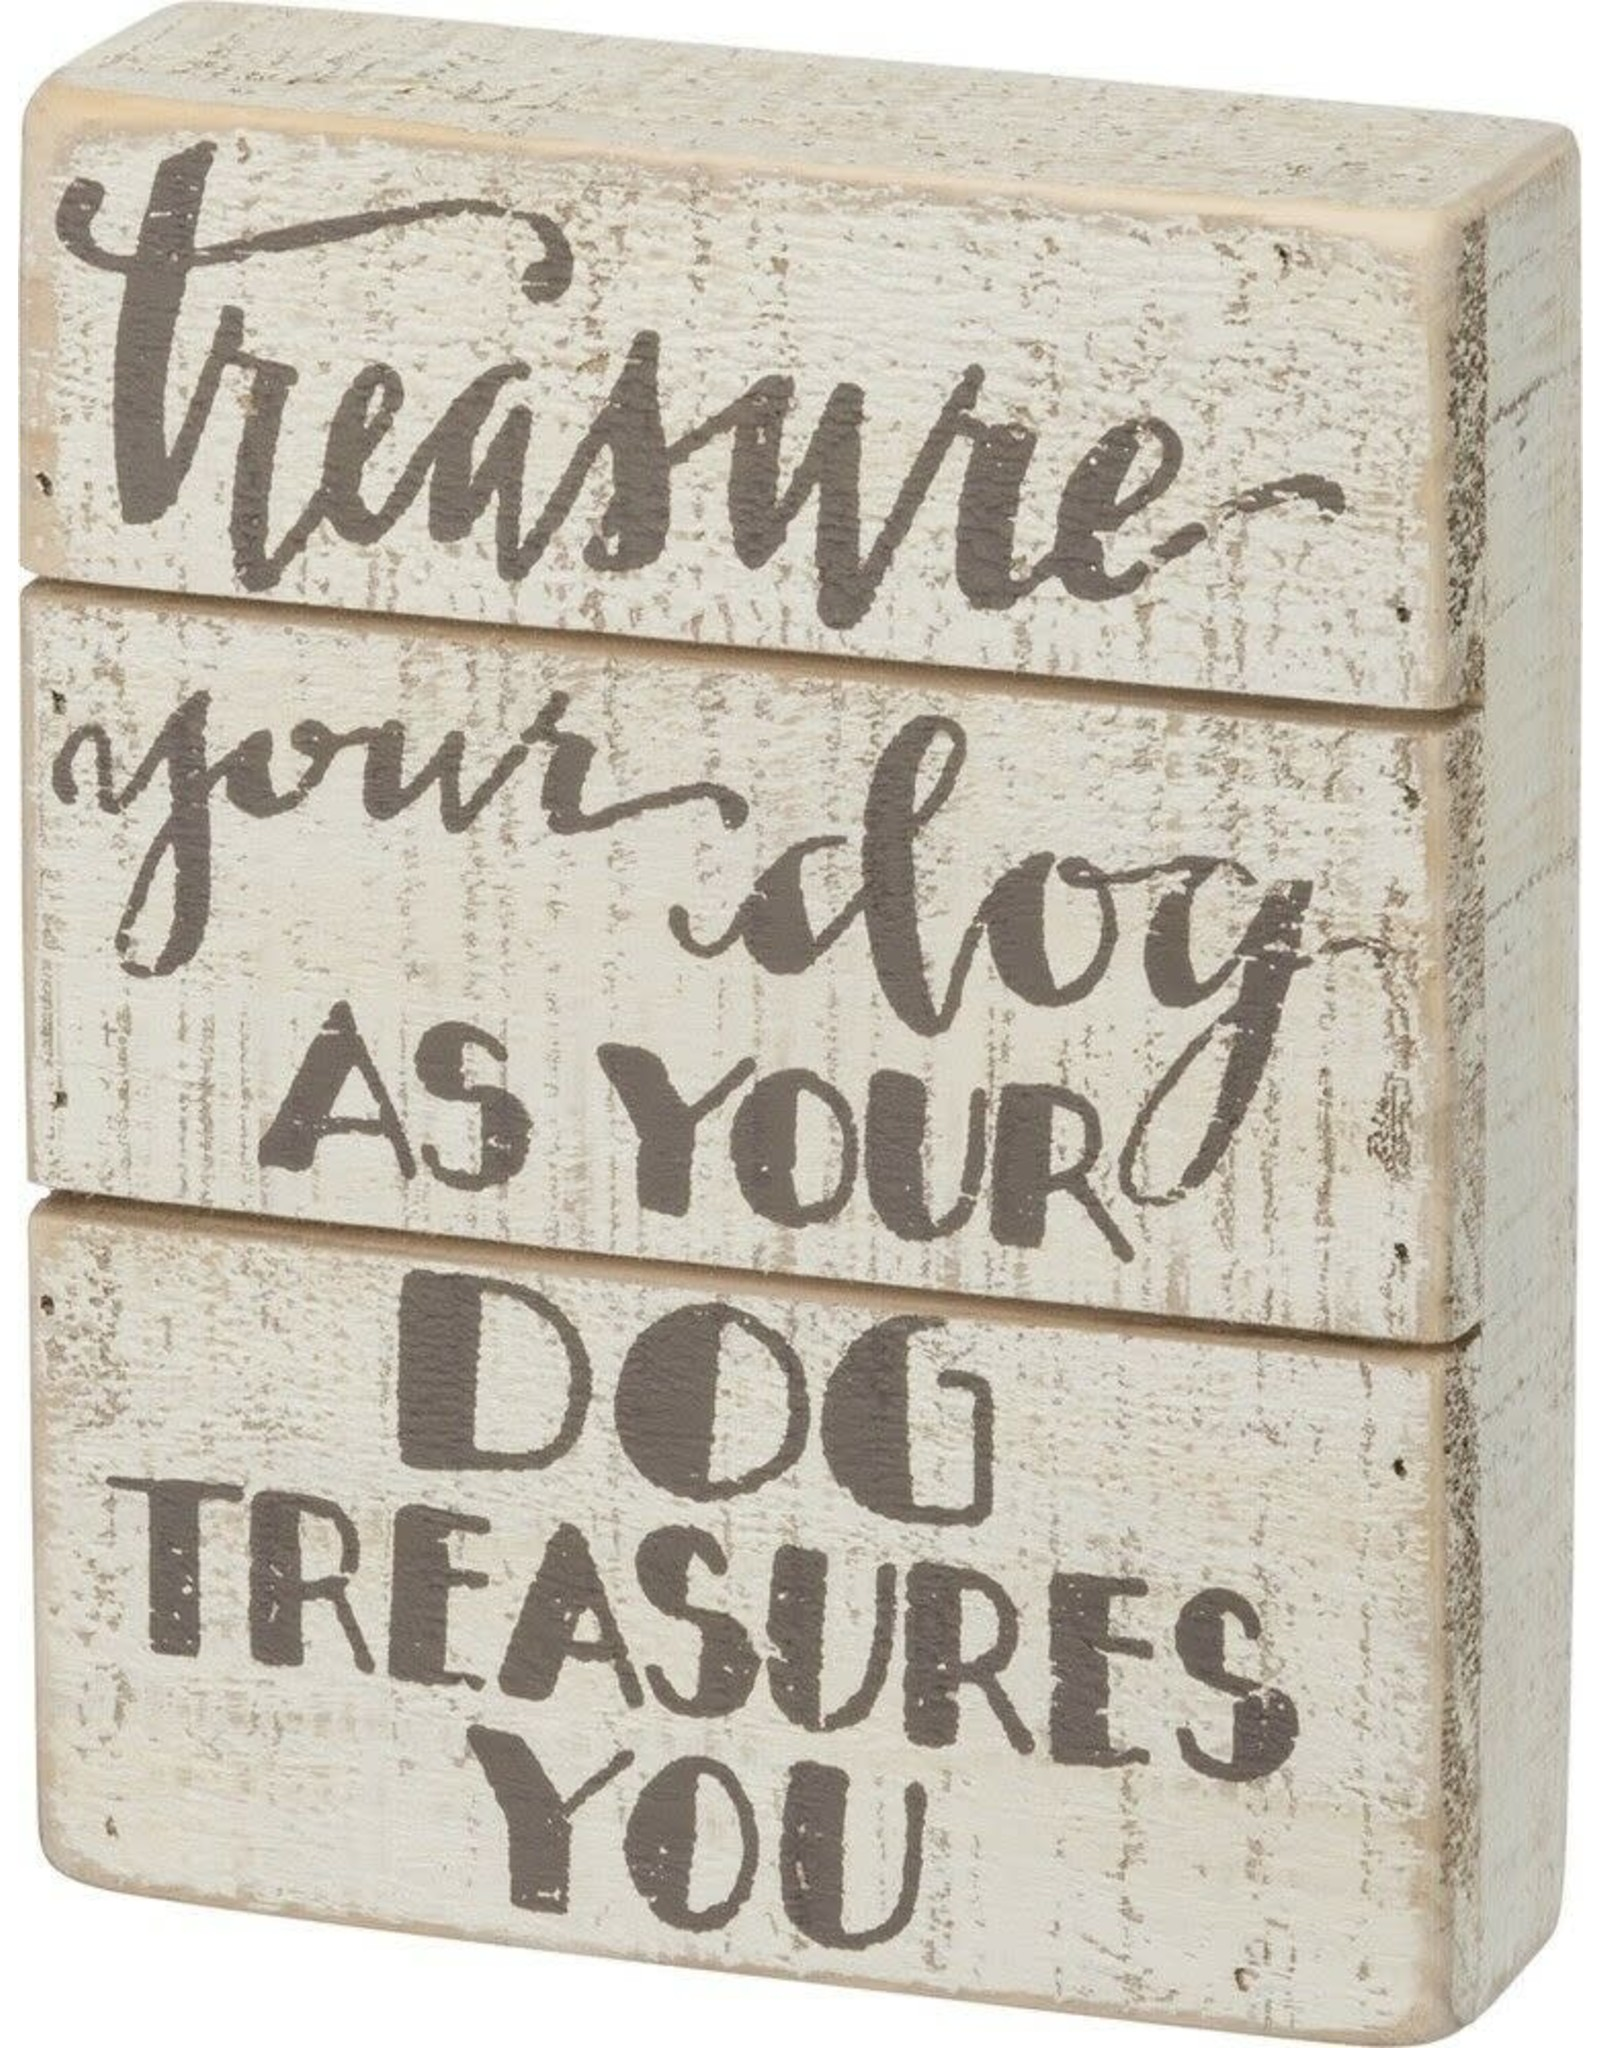 PRIMITIVES BY KATHY PET LOVER BLOCK SIGNS TREASURE YOUR DOG